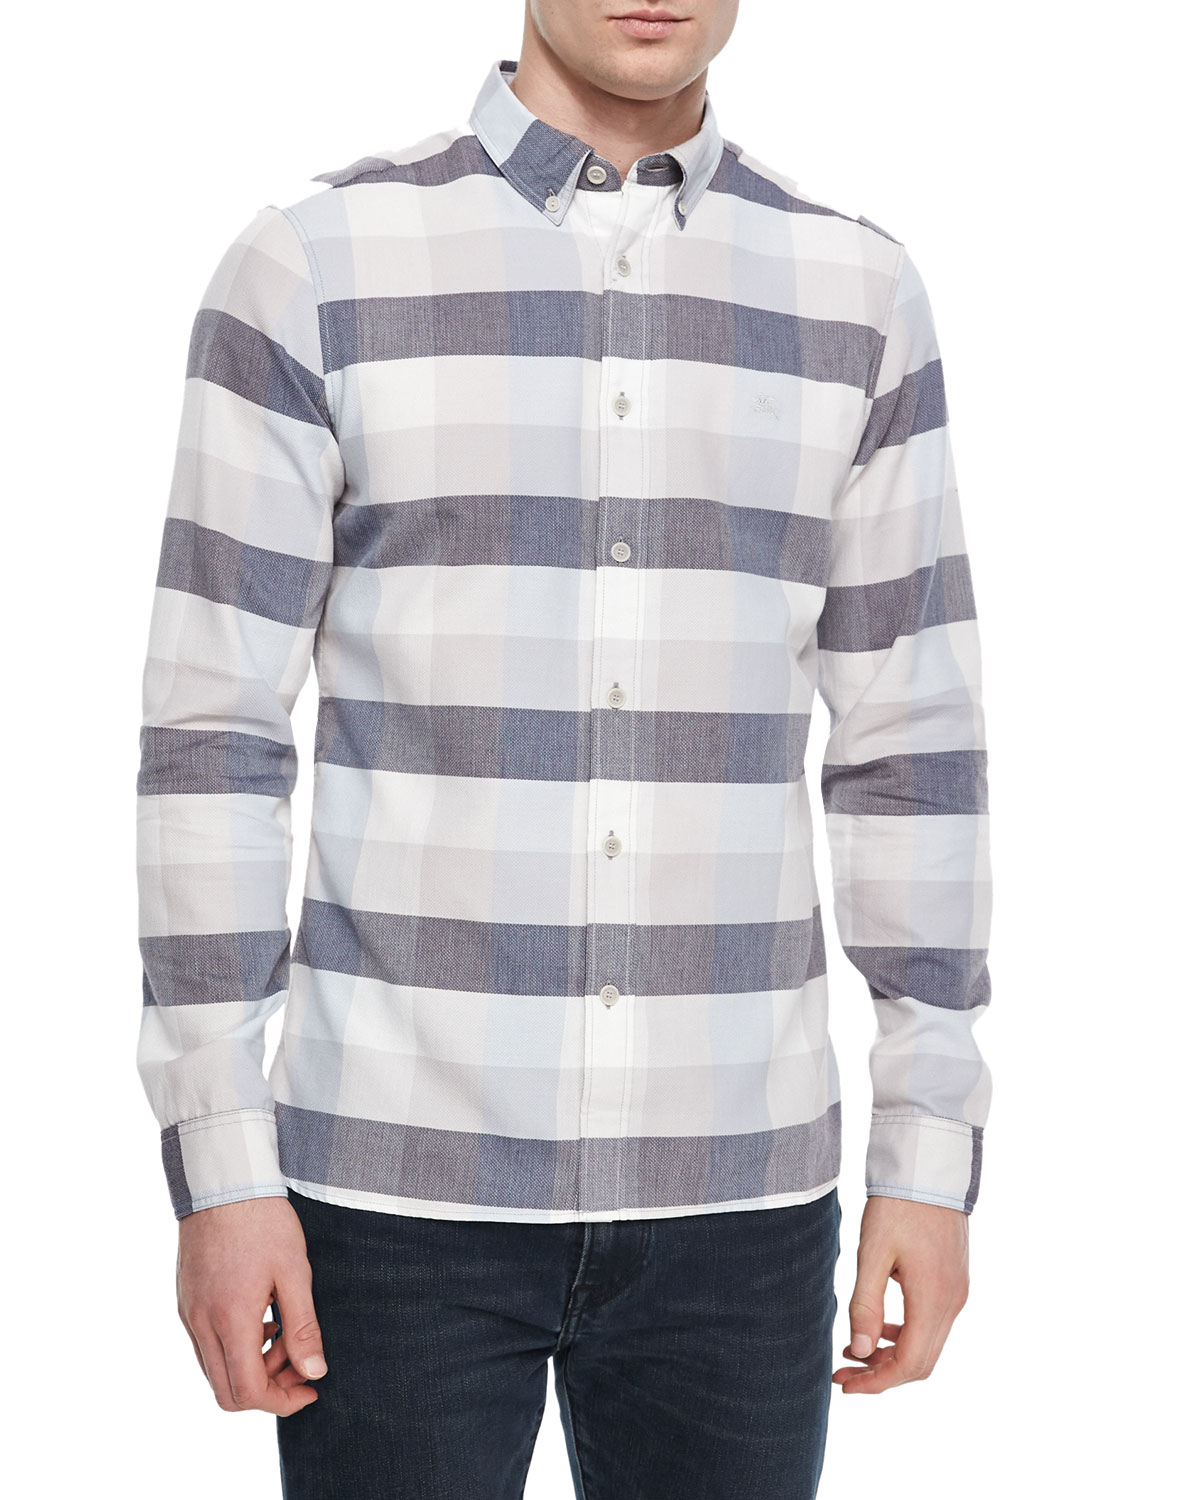 Large-Check Long-Sleeve Shirt, Pale Gray